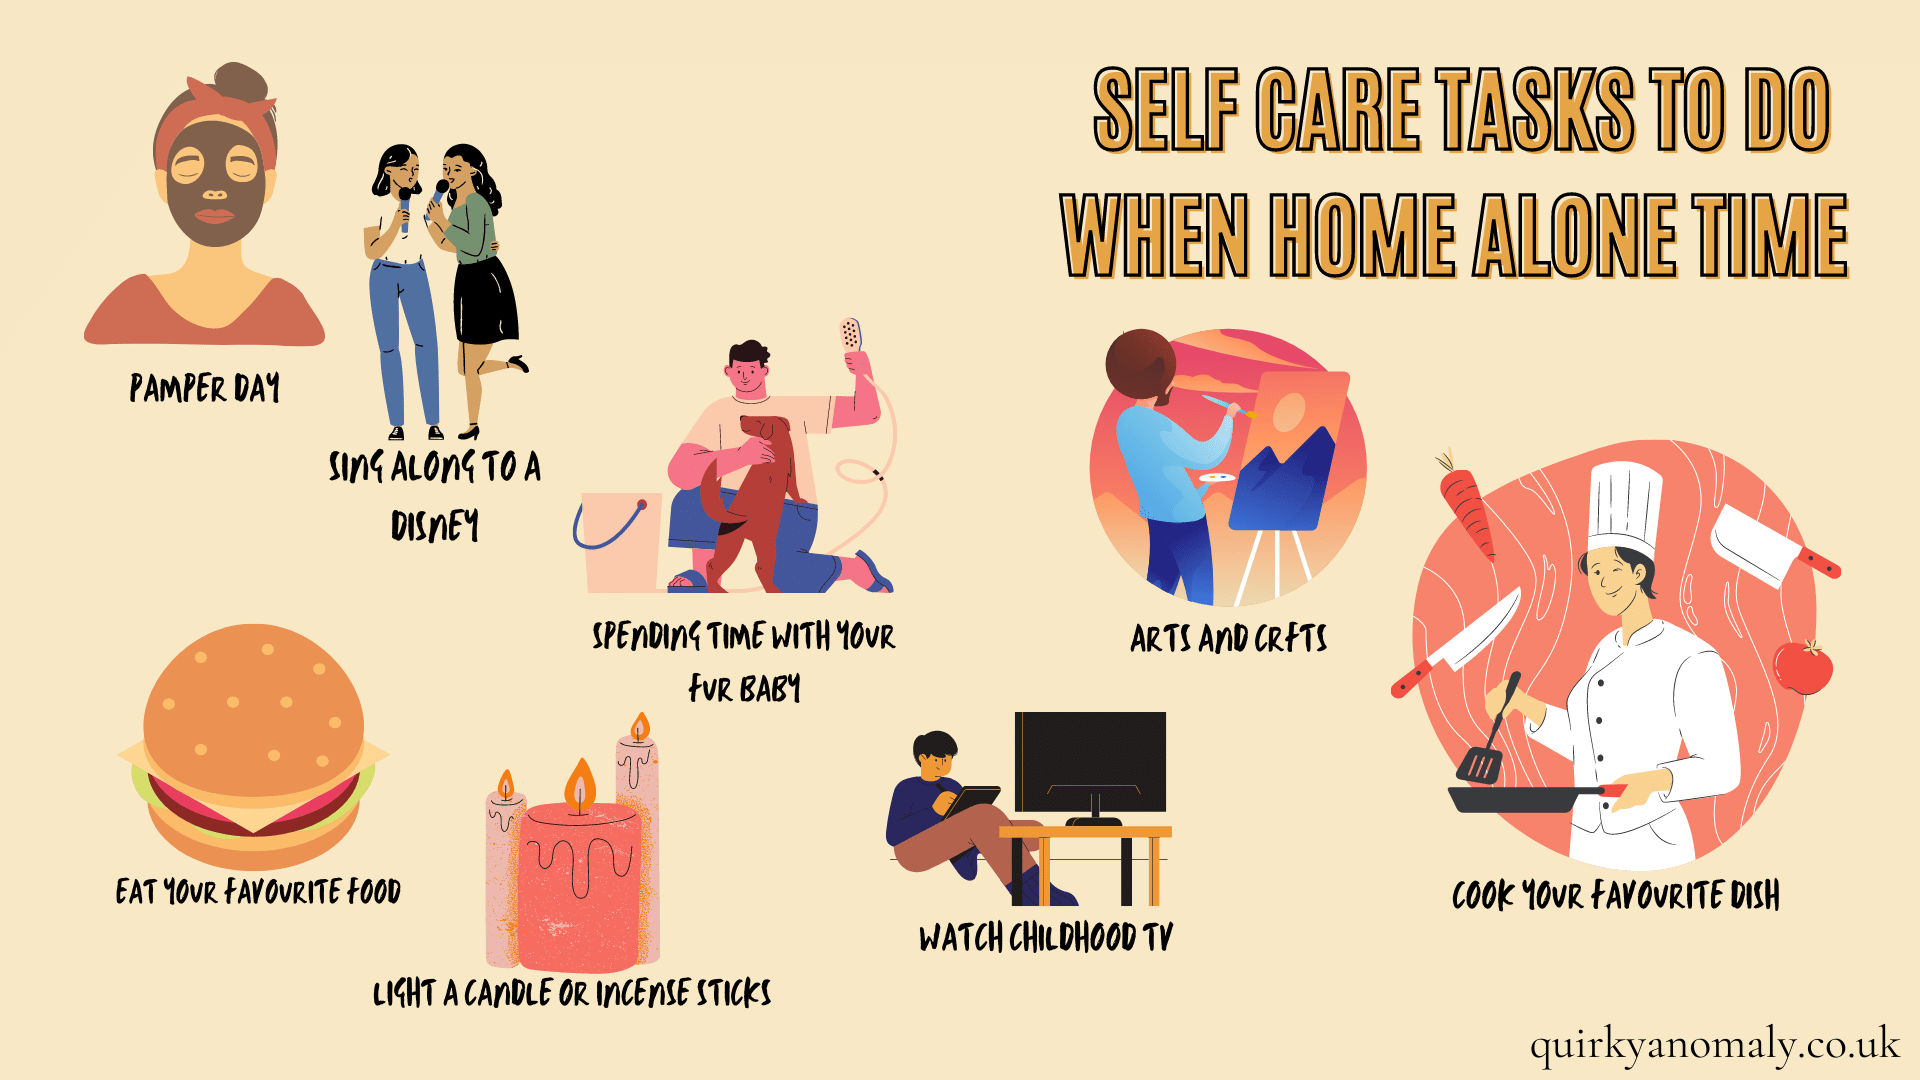 Self care tasks to do when home alone time